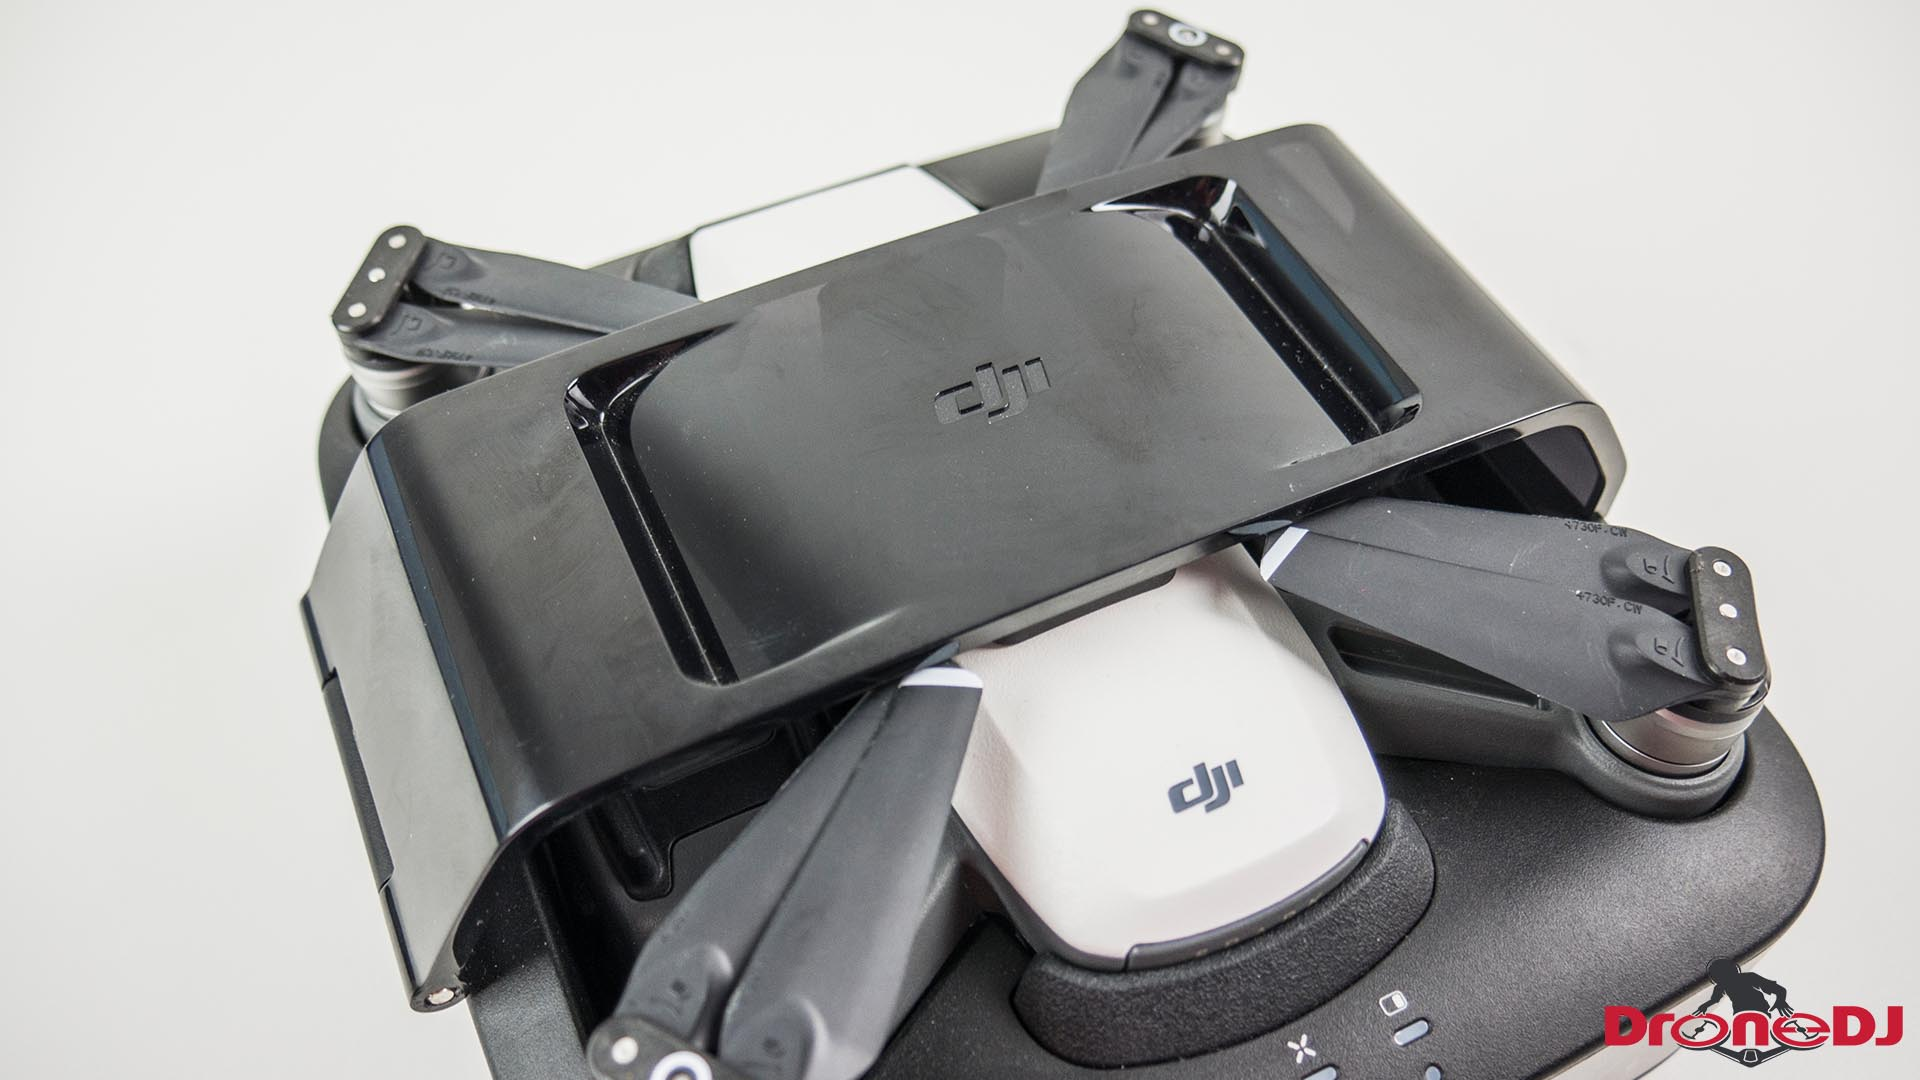 The DJI Portable Charging Station is the best accessory you can buy for your Spark